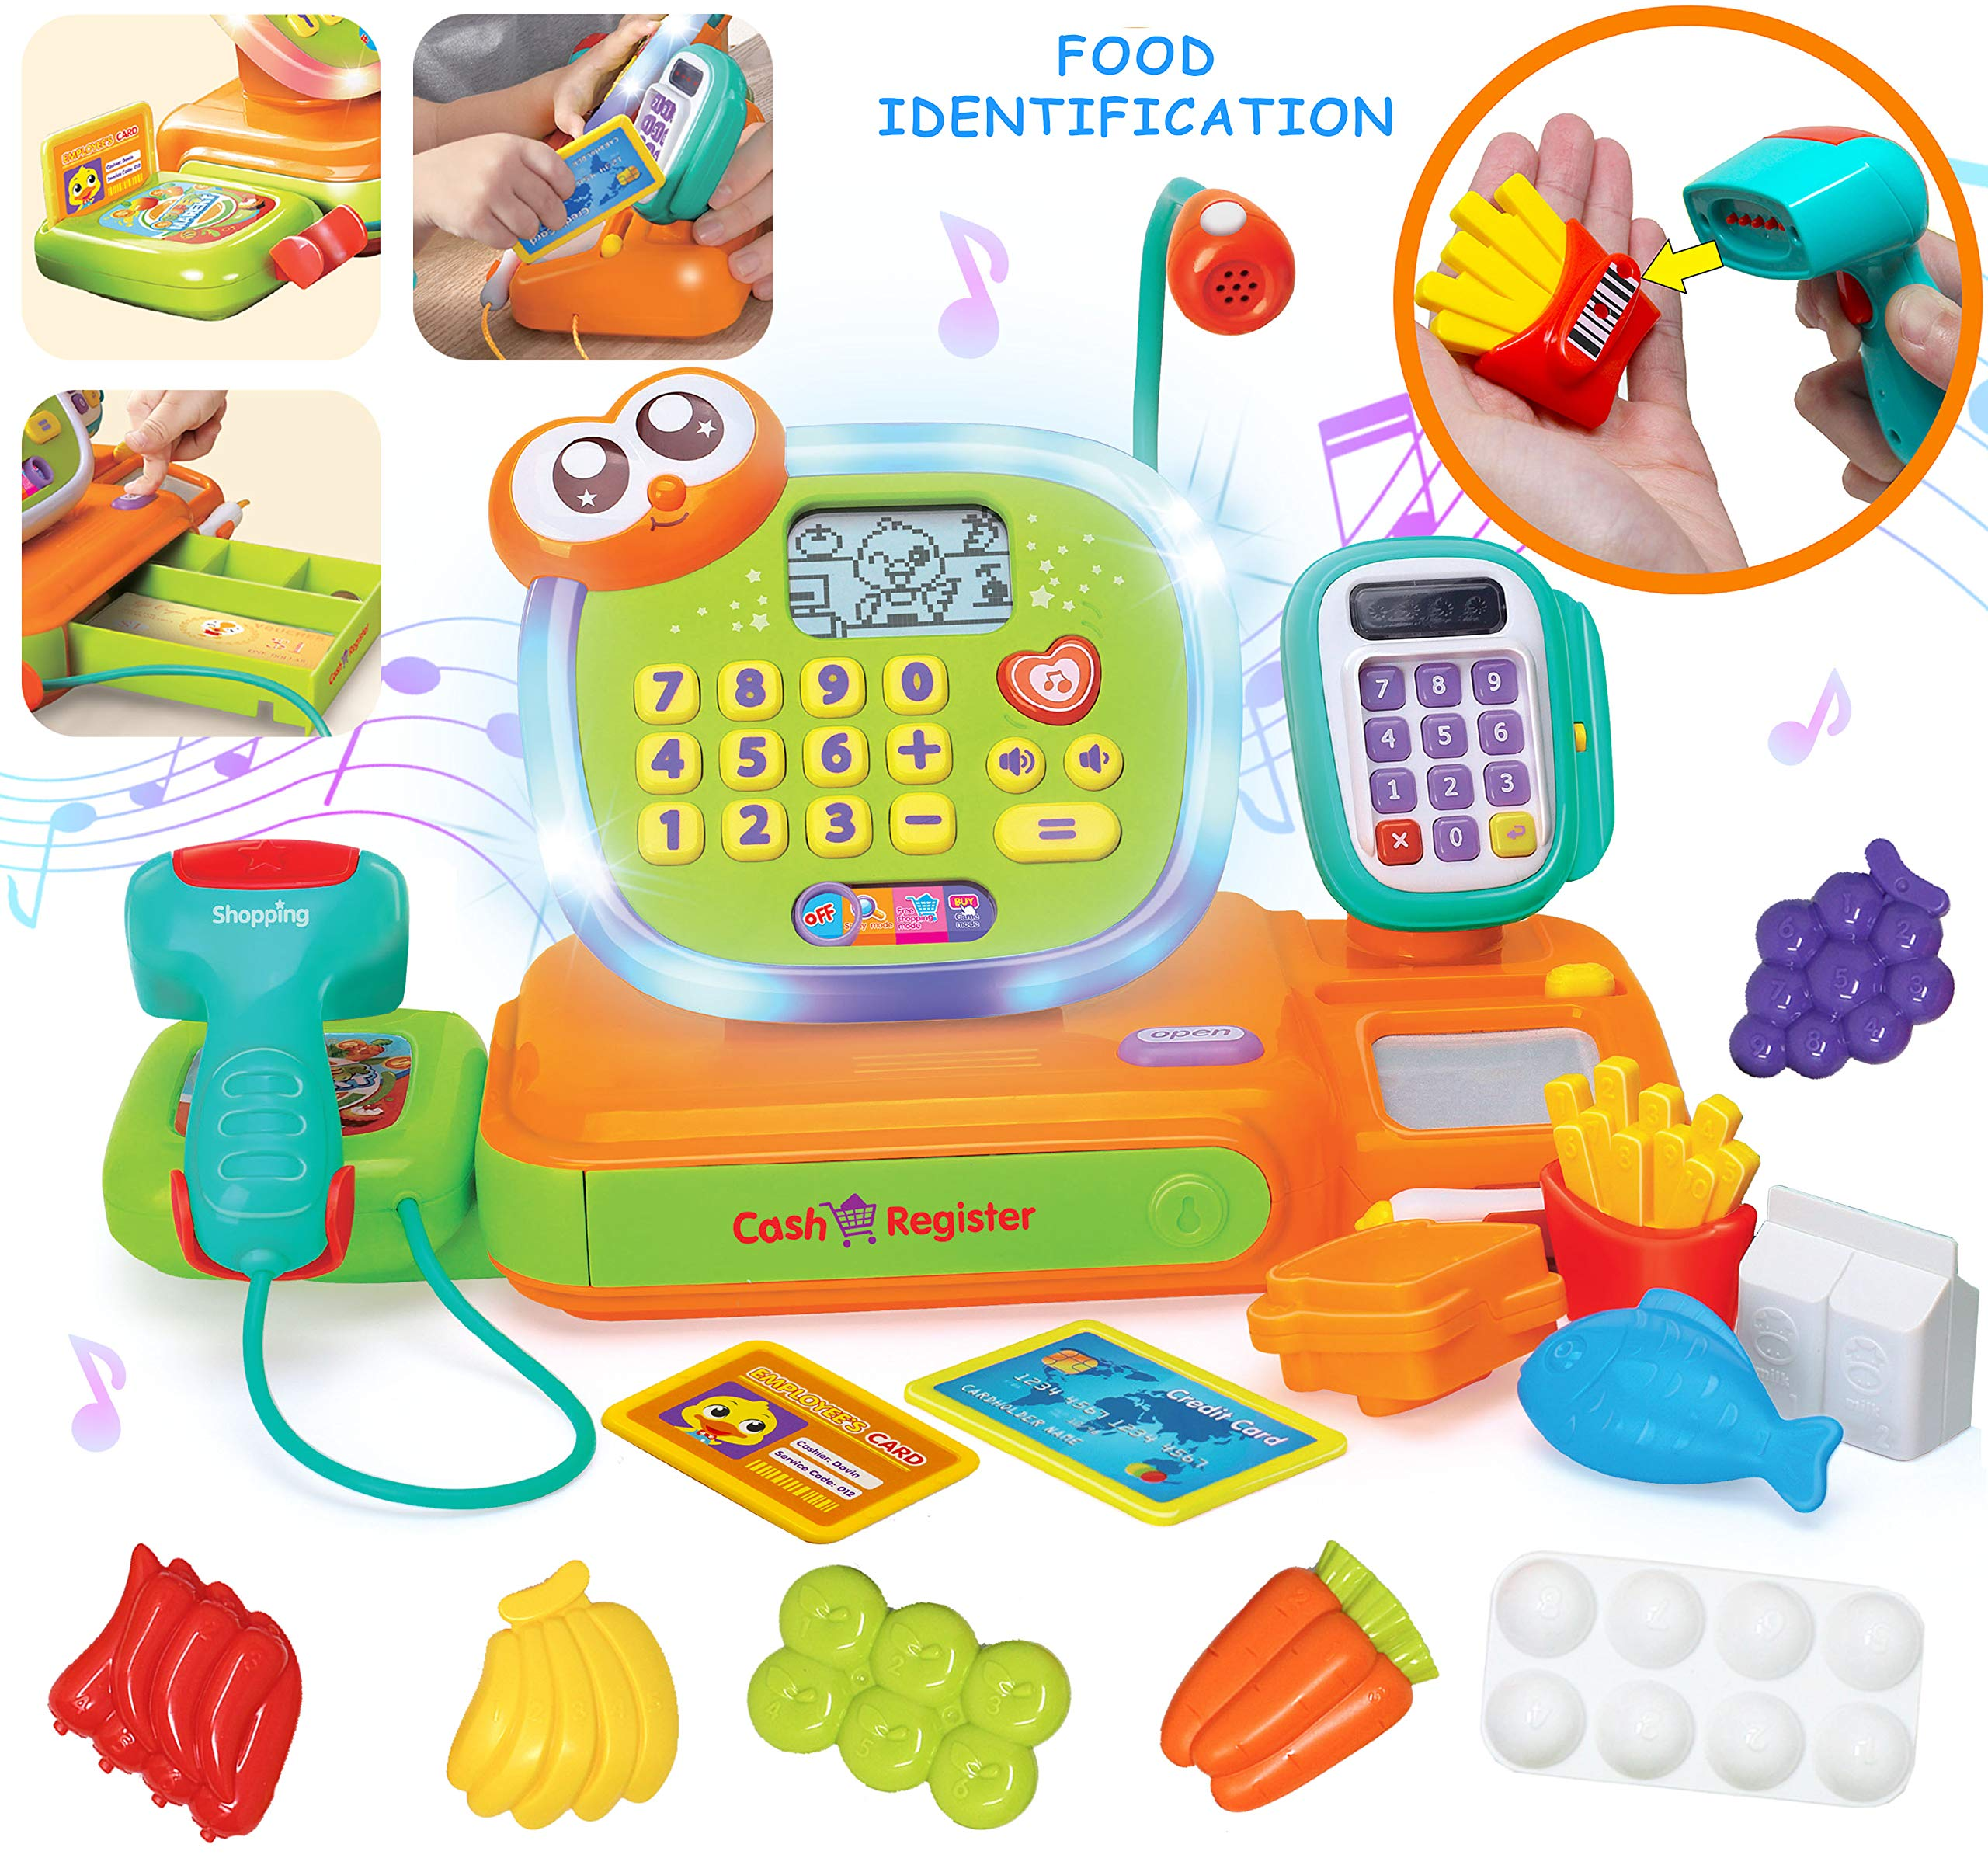 JOYIN Smart Cash Register Pretend Play Cashier with Scanner, Microphone, Play Money and Grocery Toy for Kid Boys and Girls, Toddler Interactive Learning, Educational, and Classroom Prize. by JOYIN